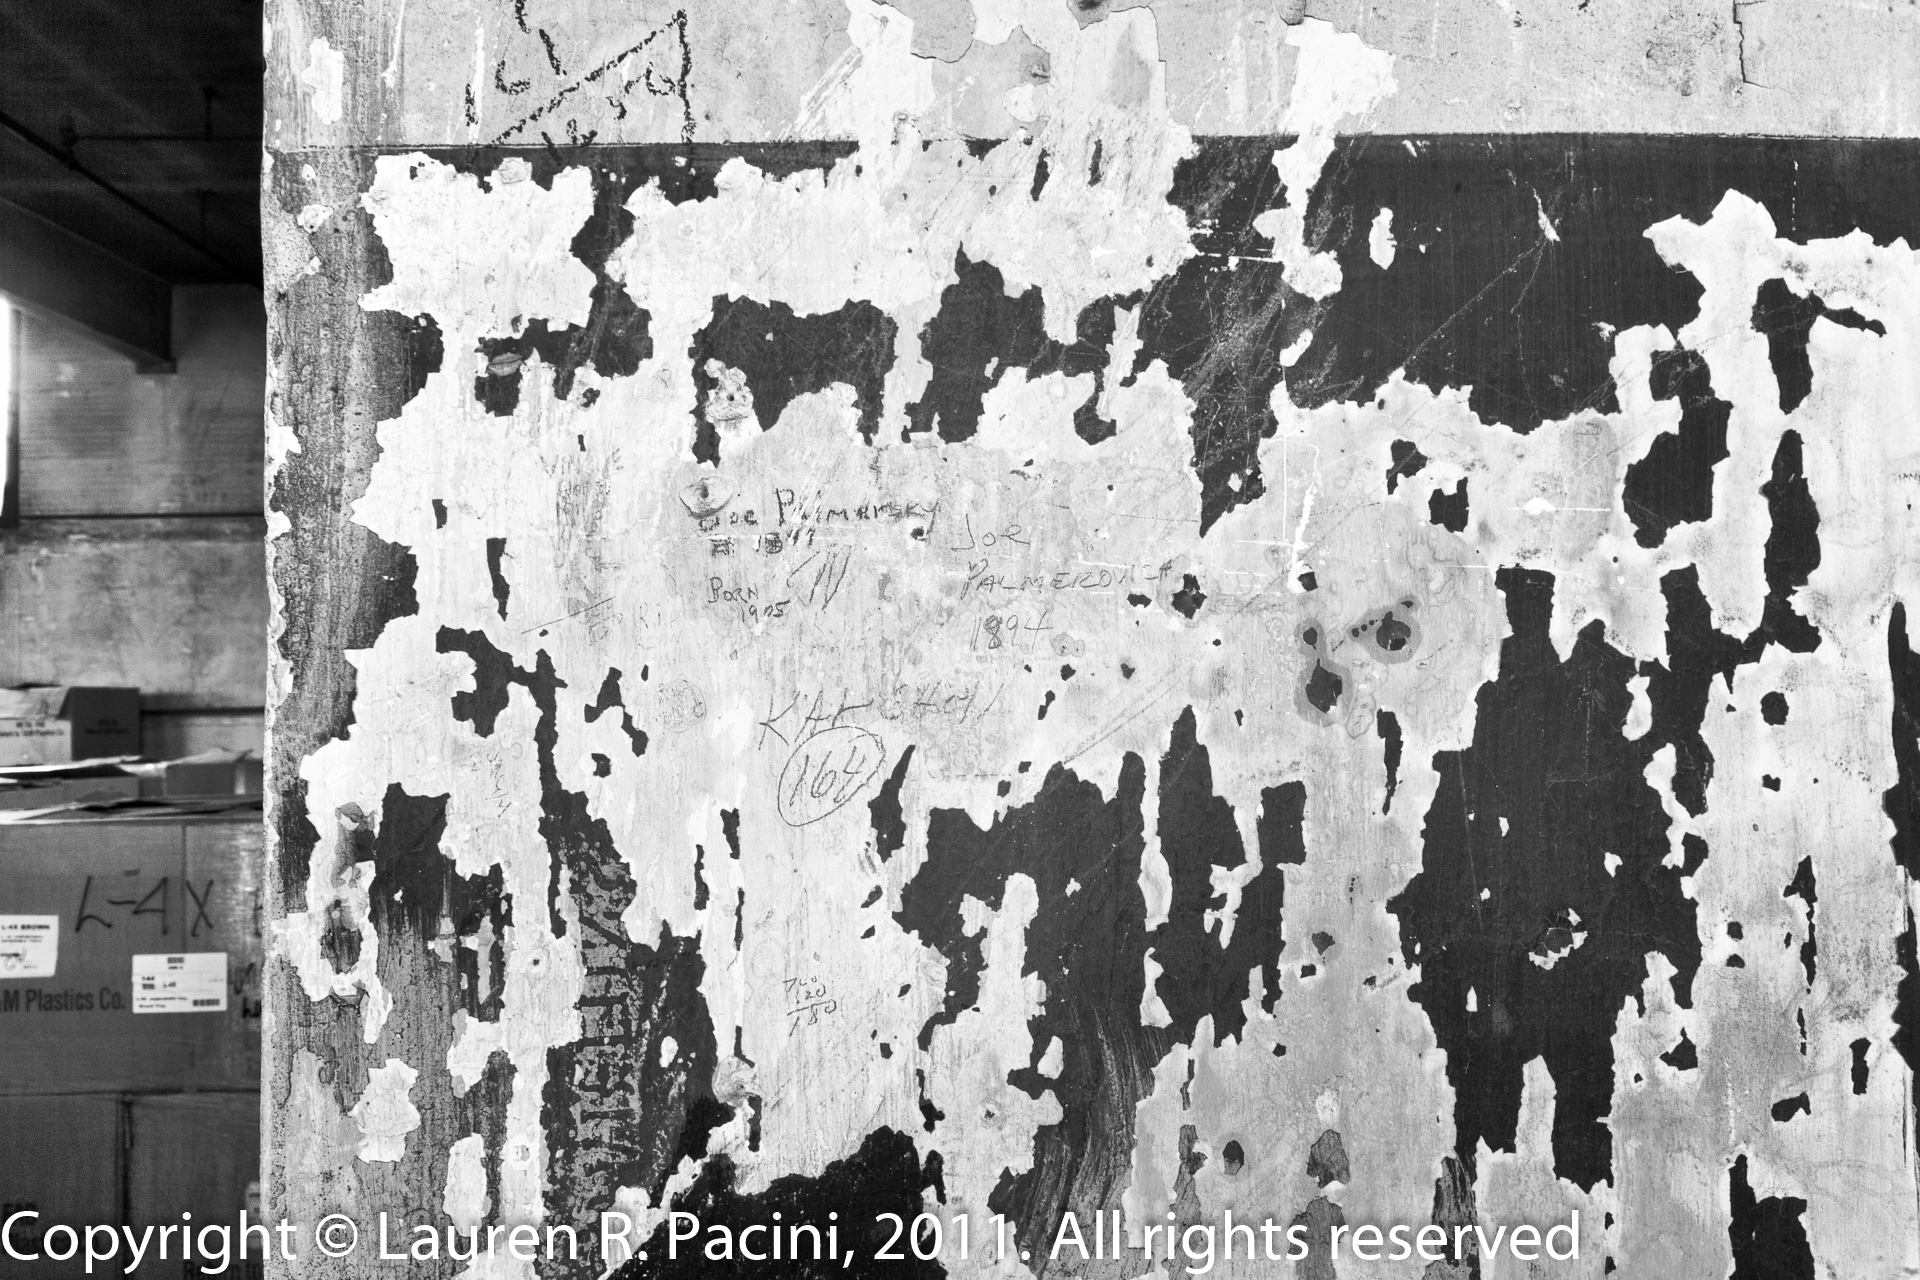 Beneath Peeling Paint is the Names of  Workers at the Winton Factory